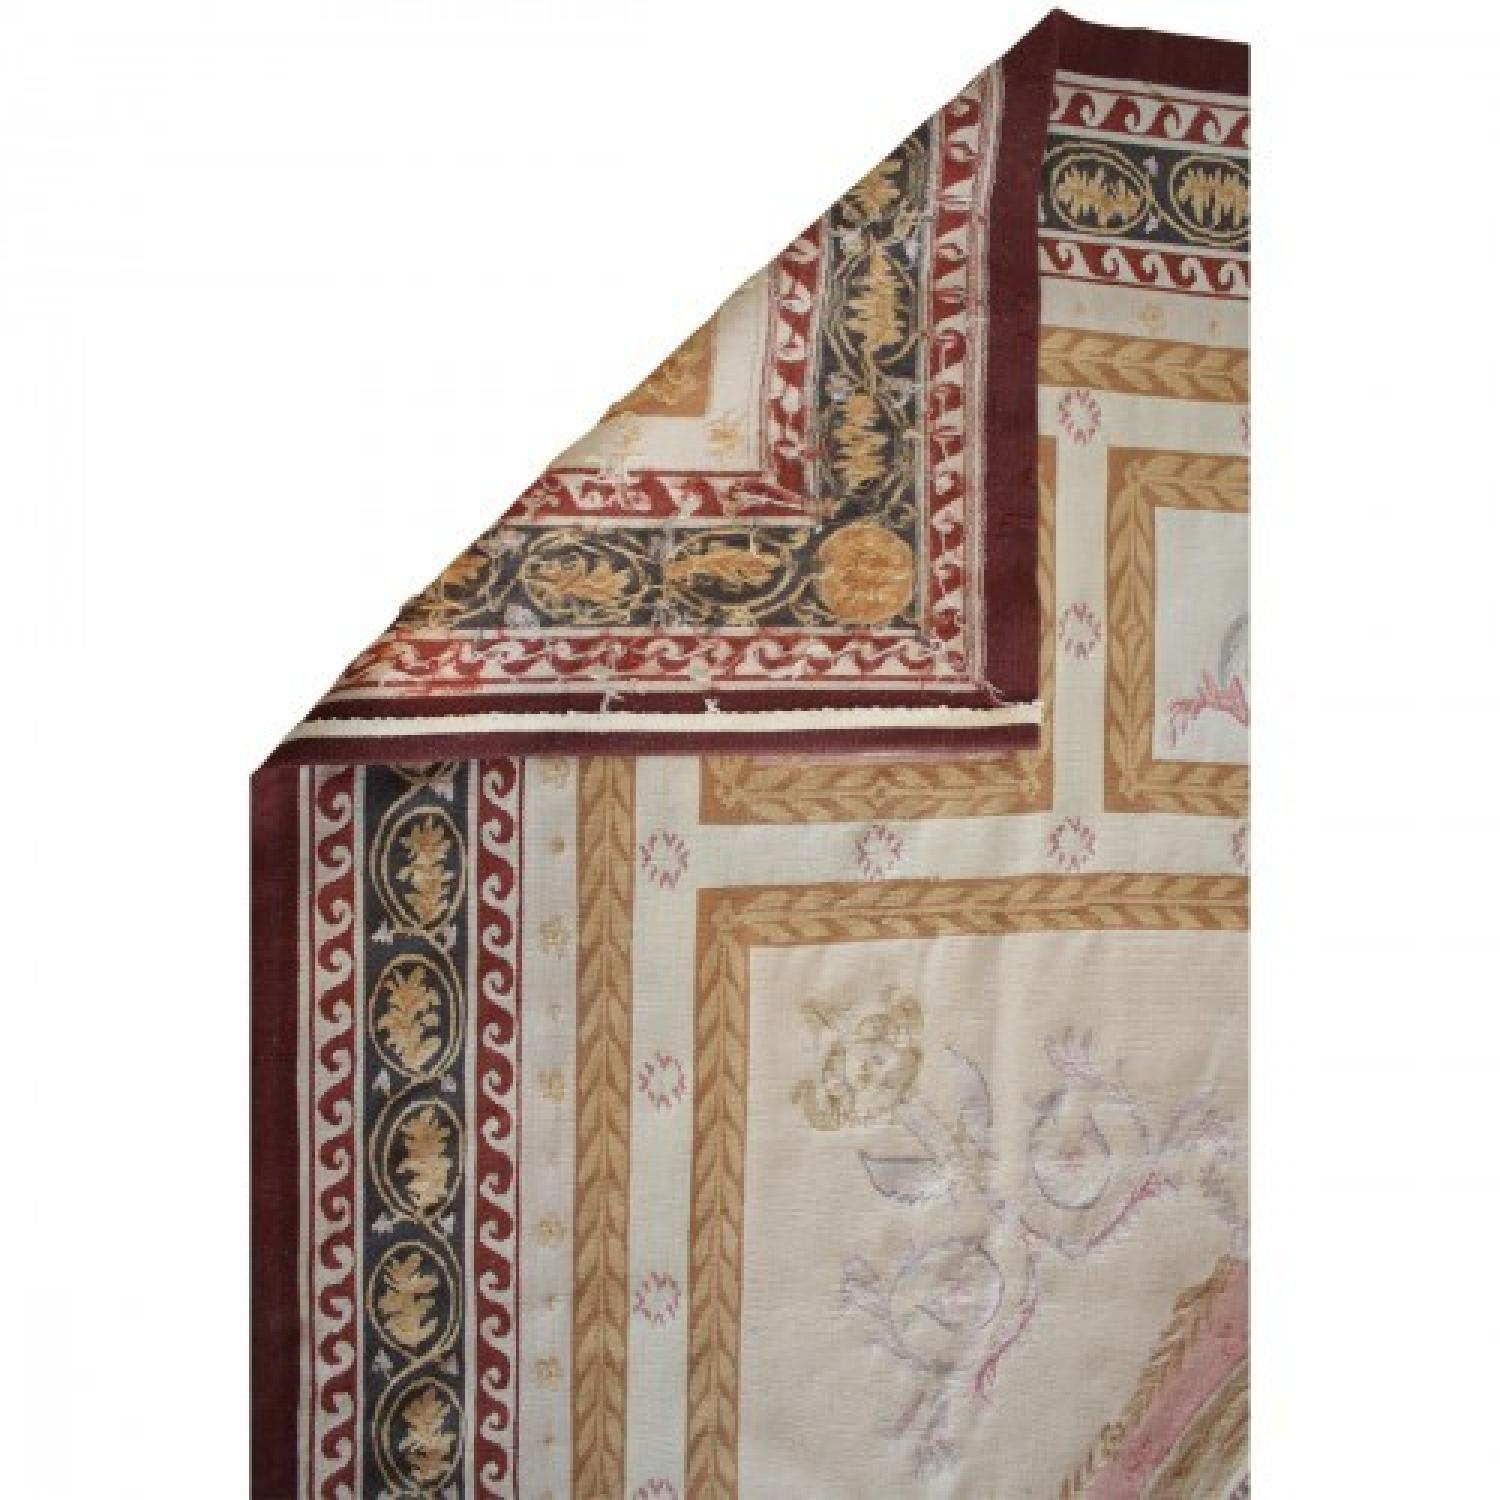 ABC Carpet & Home Hand Tied Woven Rug - image-6